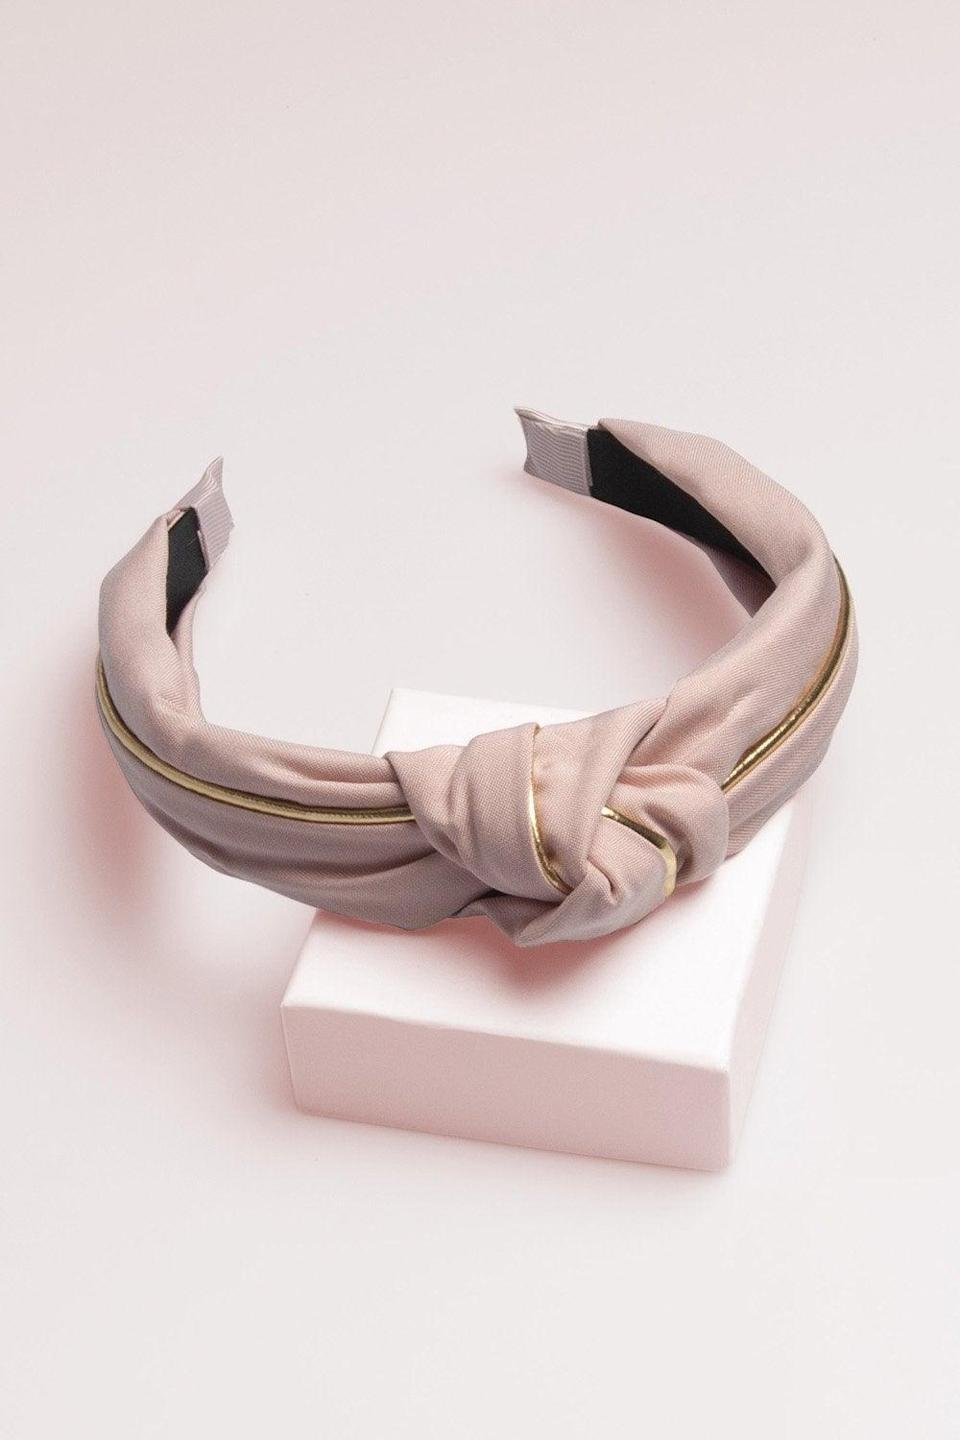 """<h2>The Hair Edit Knotted Headband</h2> <br>The gold accent on this blush-colored band will add a touch of elegance to any summer outfit, from a floral maxi dress to your two-piece sweatsuit.<br><br><br><strong>the hair edit</strong> Knotted Headband, $, available at <a href=""""https://go.skimresources.com/?id=30283X879131&url=https%3A%2F%2Fwww.thehairedit.com%2Fproducts%2Fknotted-headband"""" rel=""""nofollow noopener"""" target=""""_blank"""" data-ylk=""""slk:The Hair Edit"""" class=""""link rapid-noclick-resp"""">The Hair Edit</a><br><br>"""